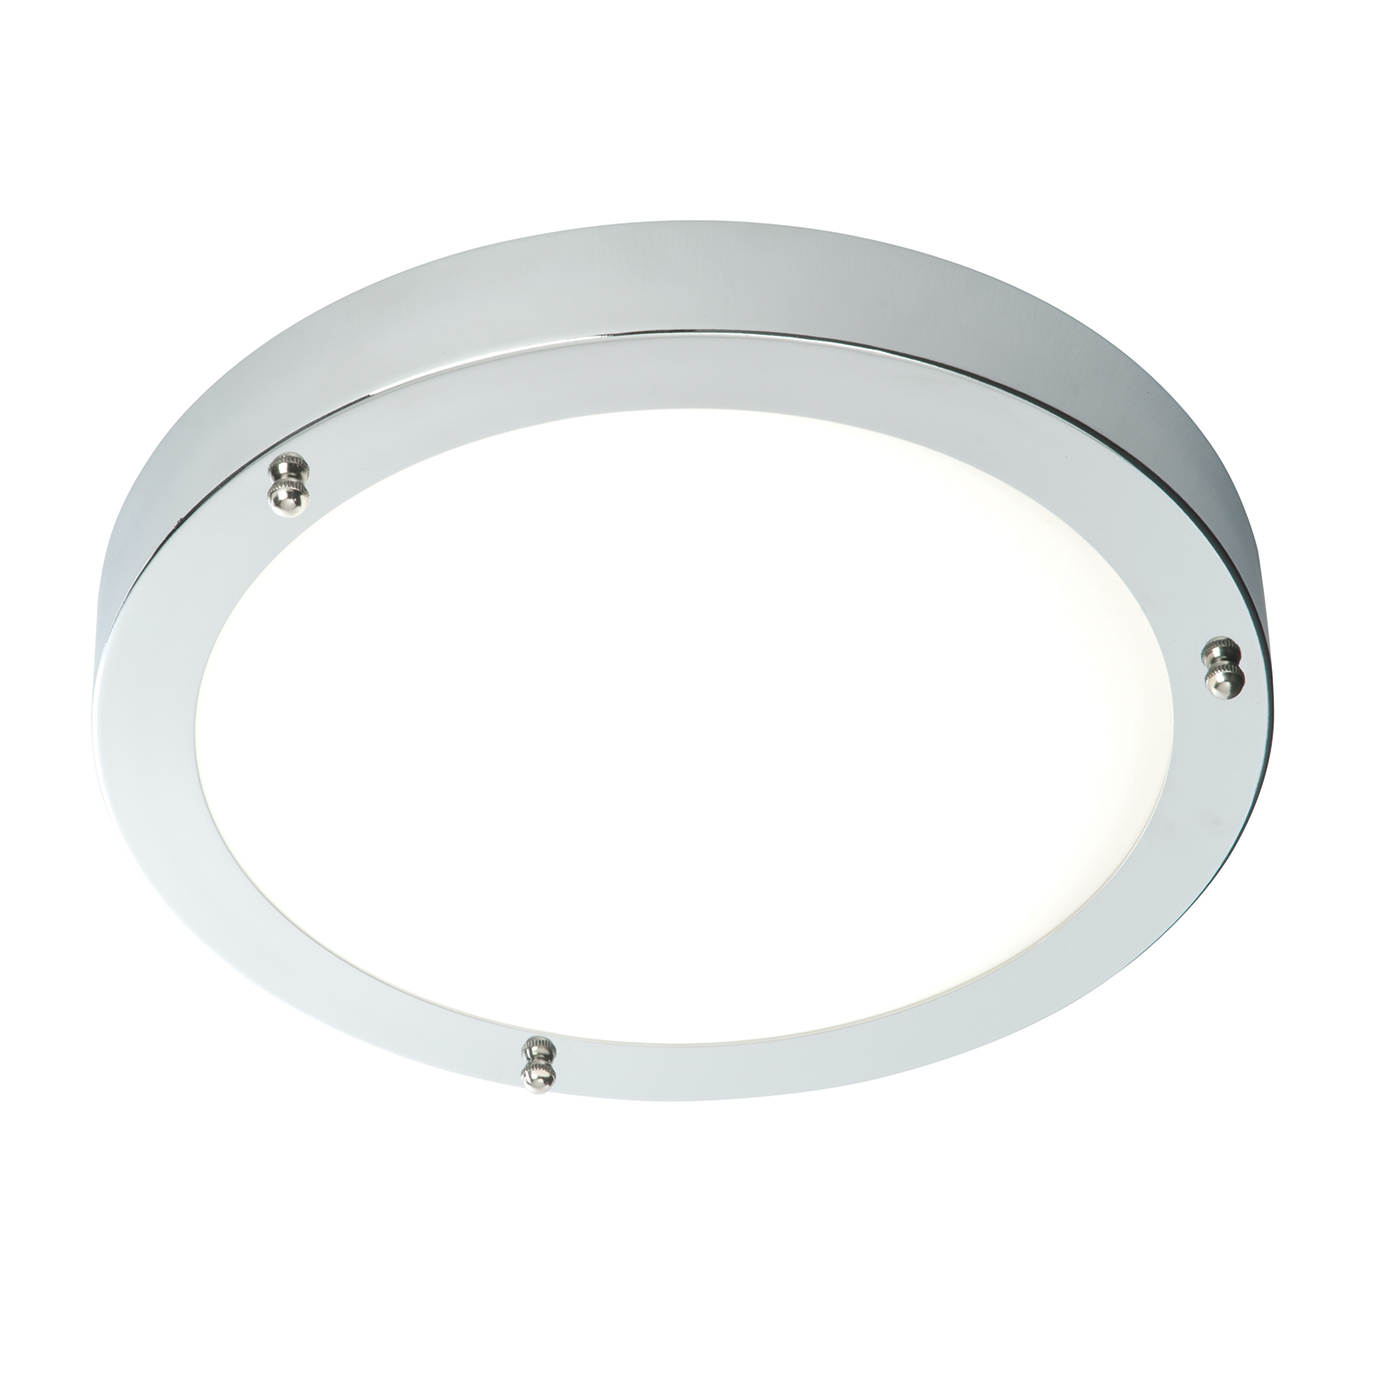 Endon Portico LED 300mm flush bathroom ceiling light IP44 9W chrome glass Thumbnail 1